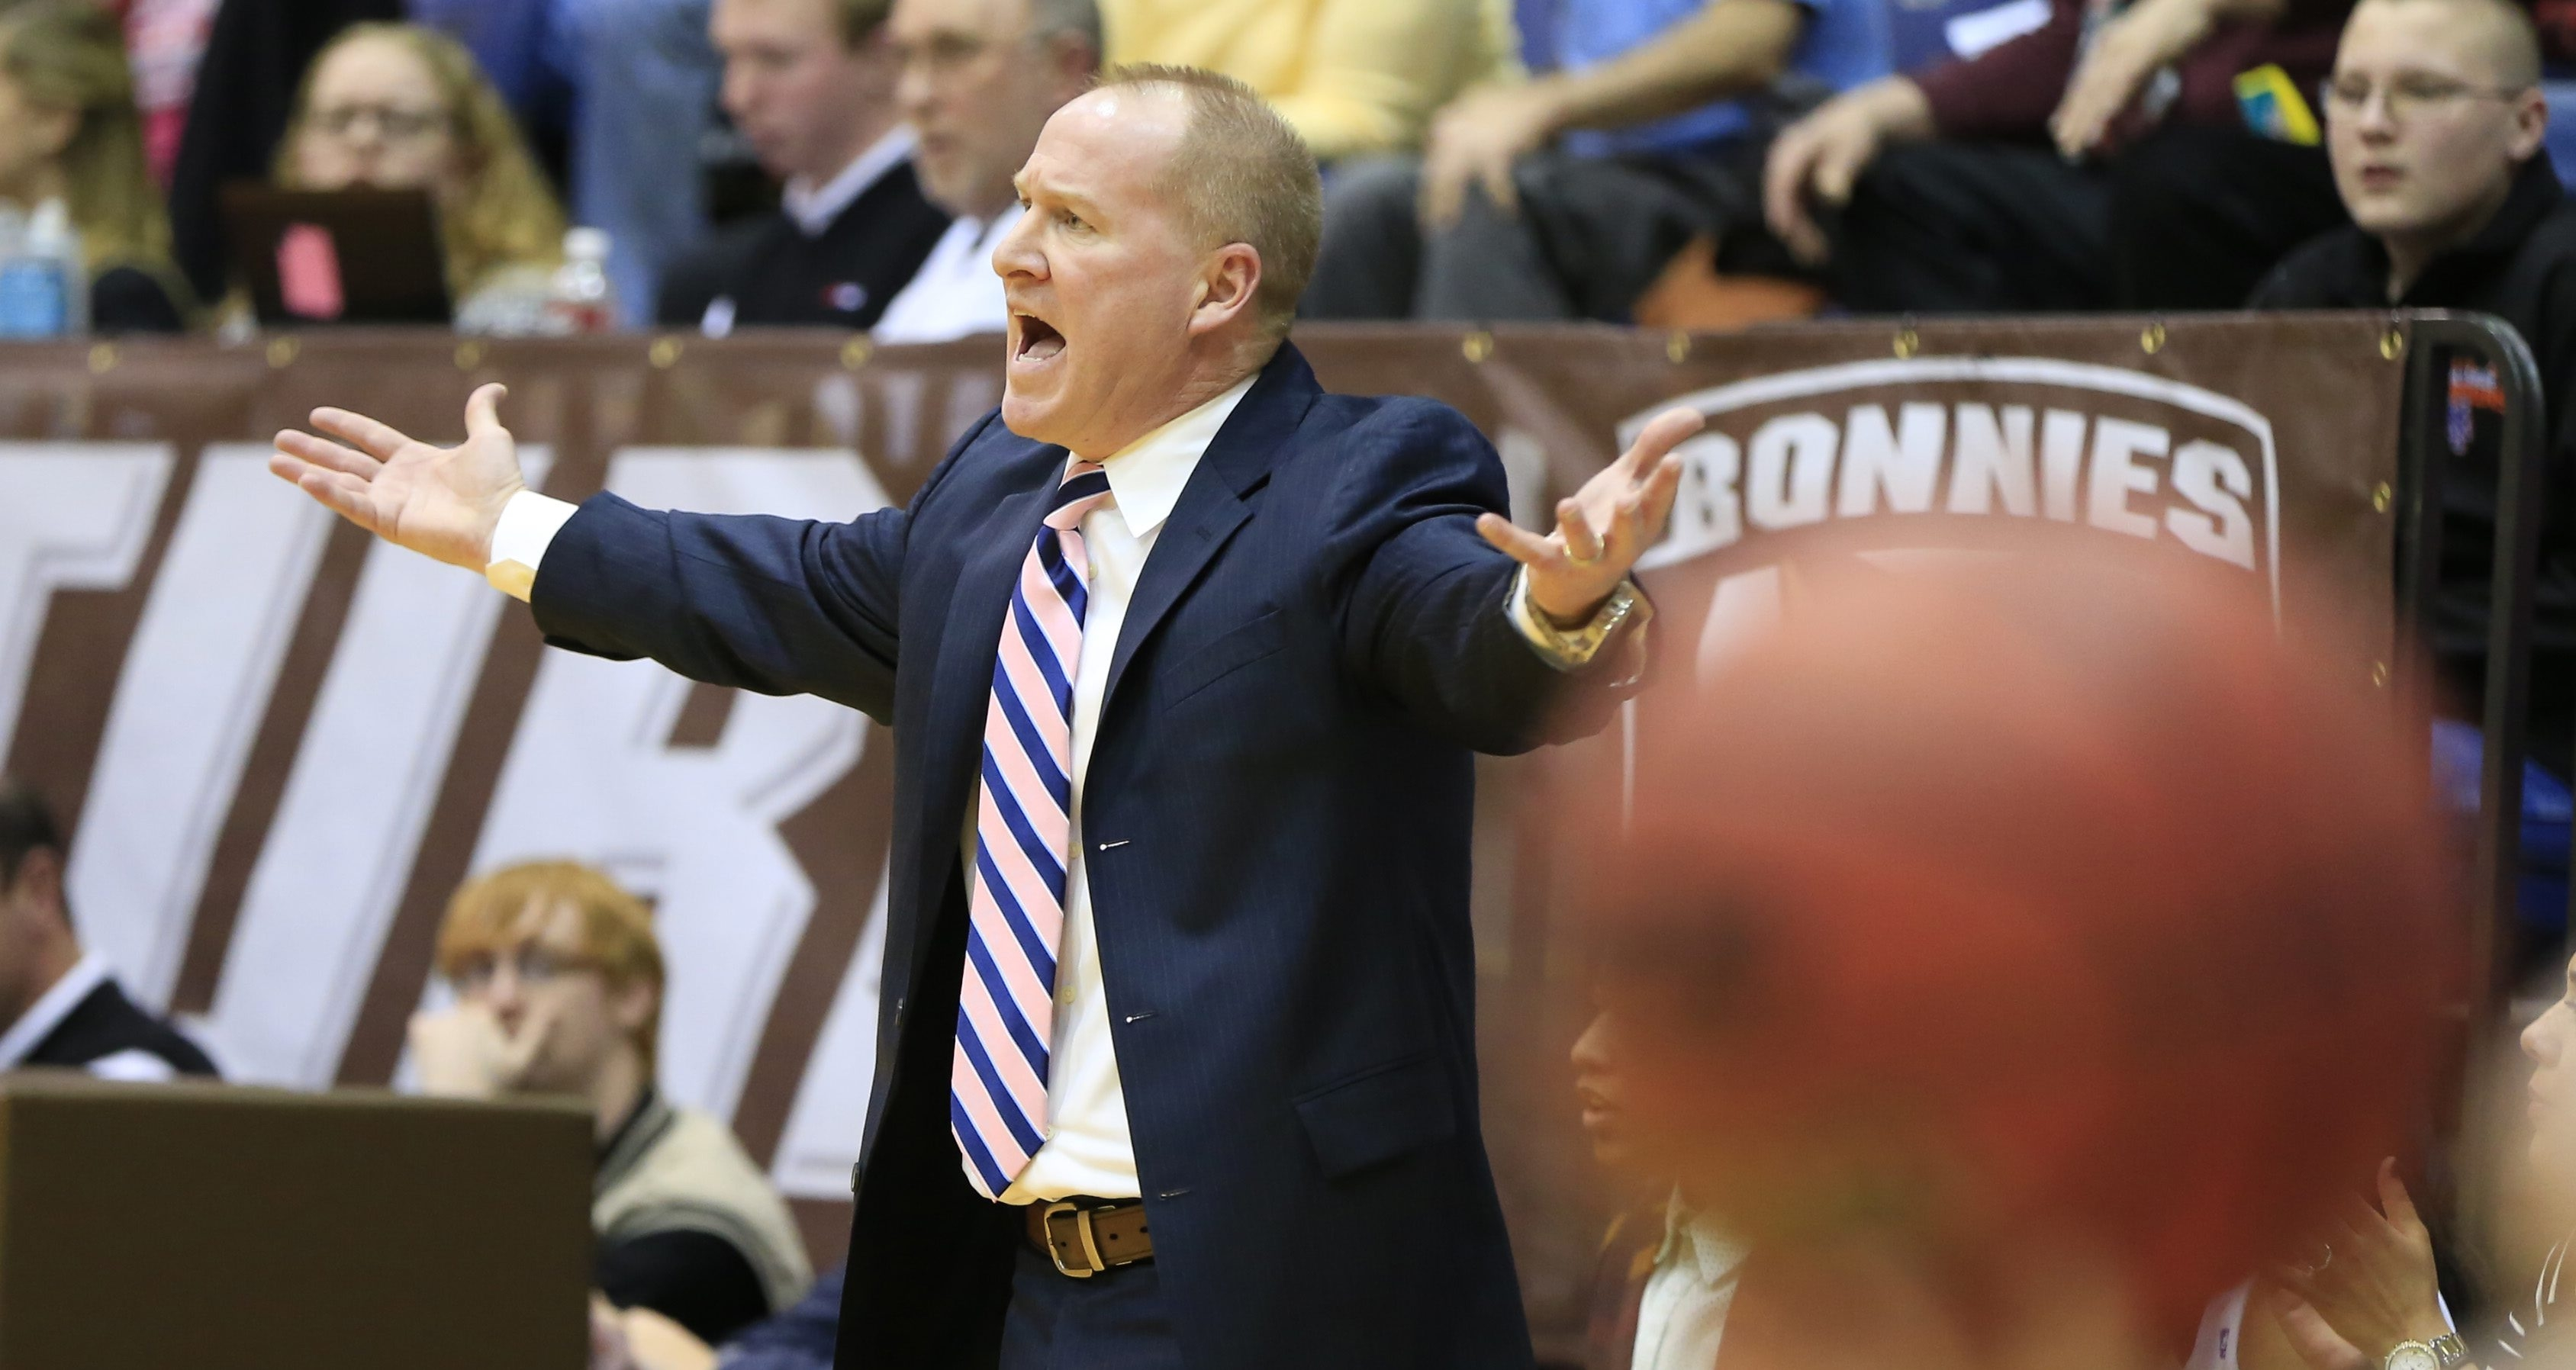 St. Bonaventure coach Jim Crowley helped bring up the quality of Big 4 women's basketball.